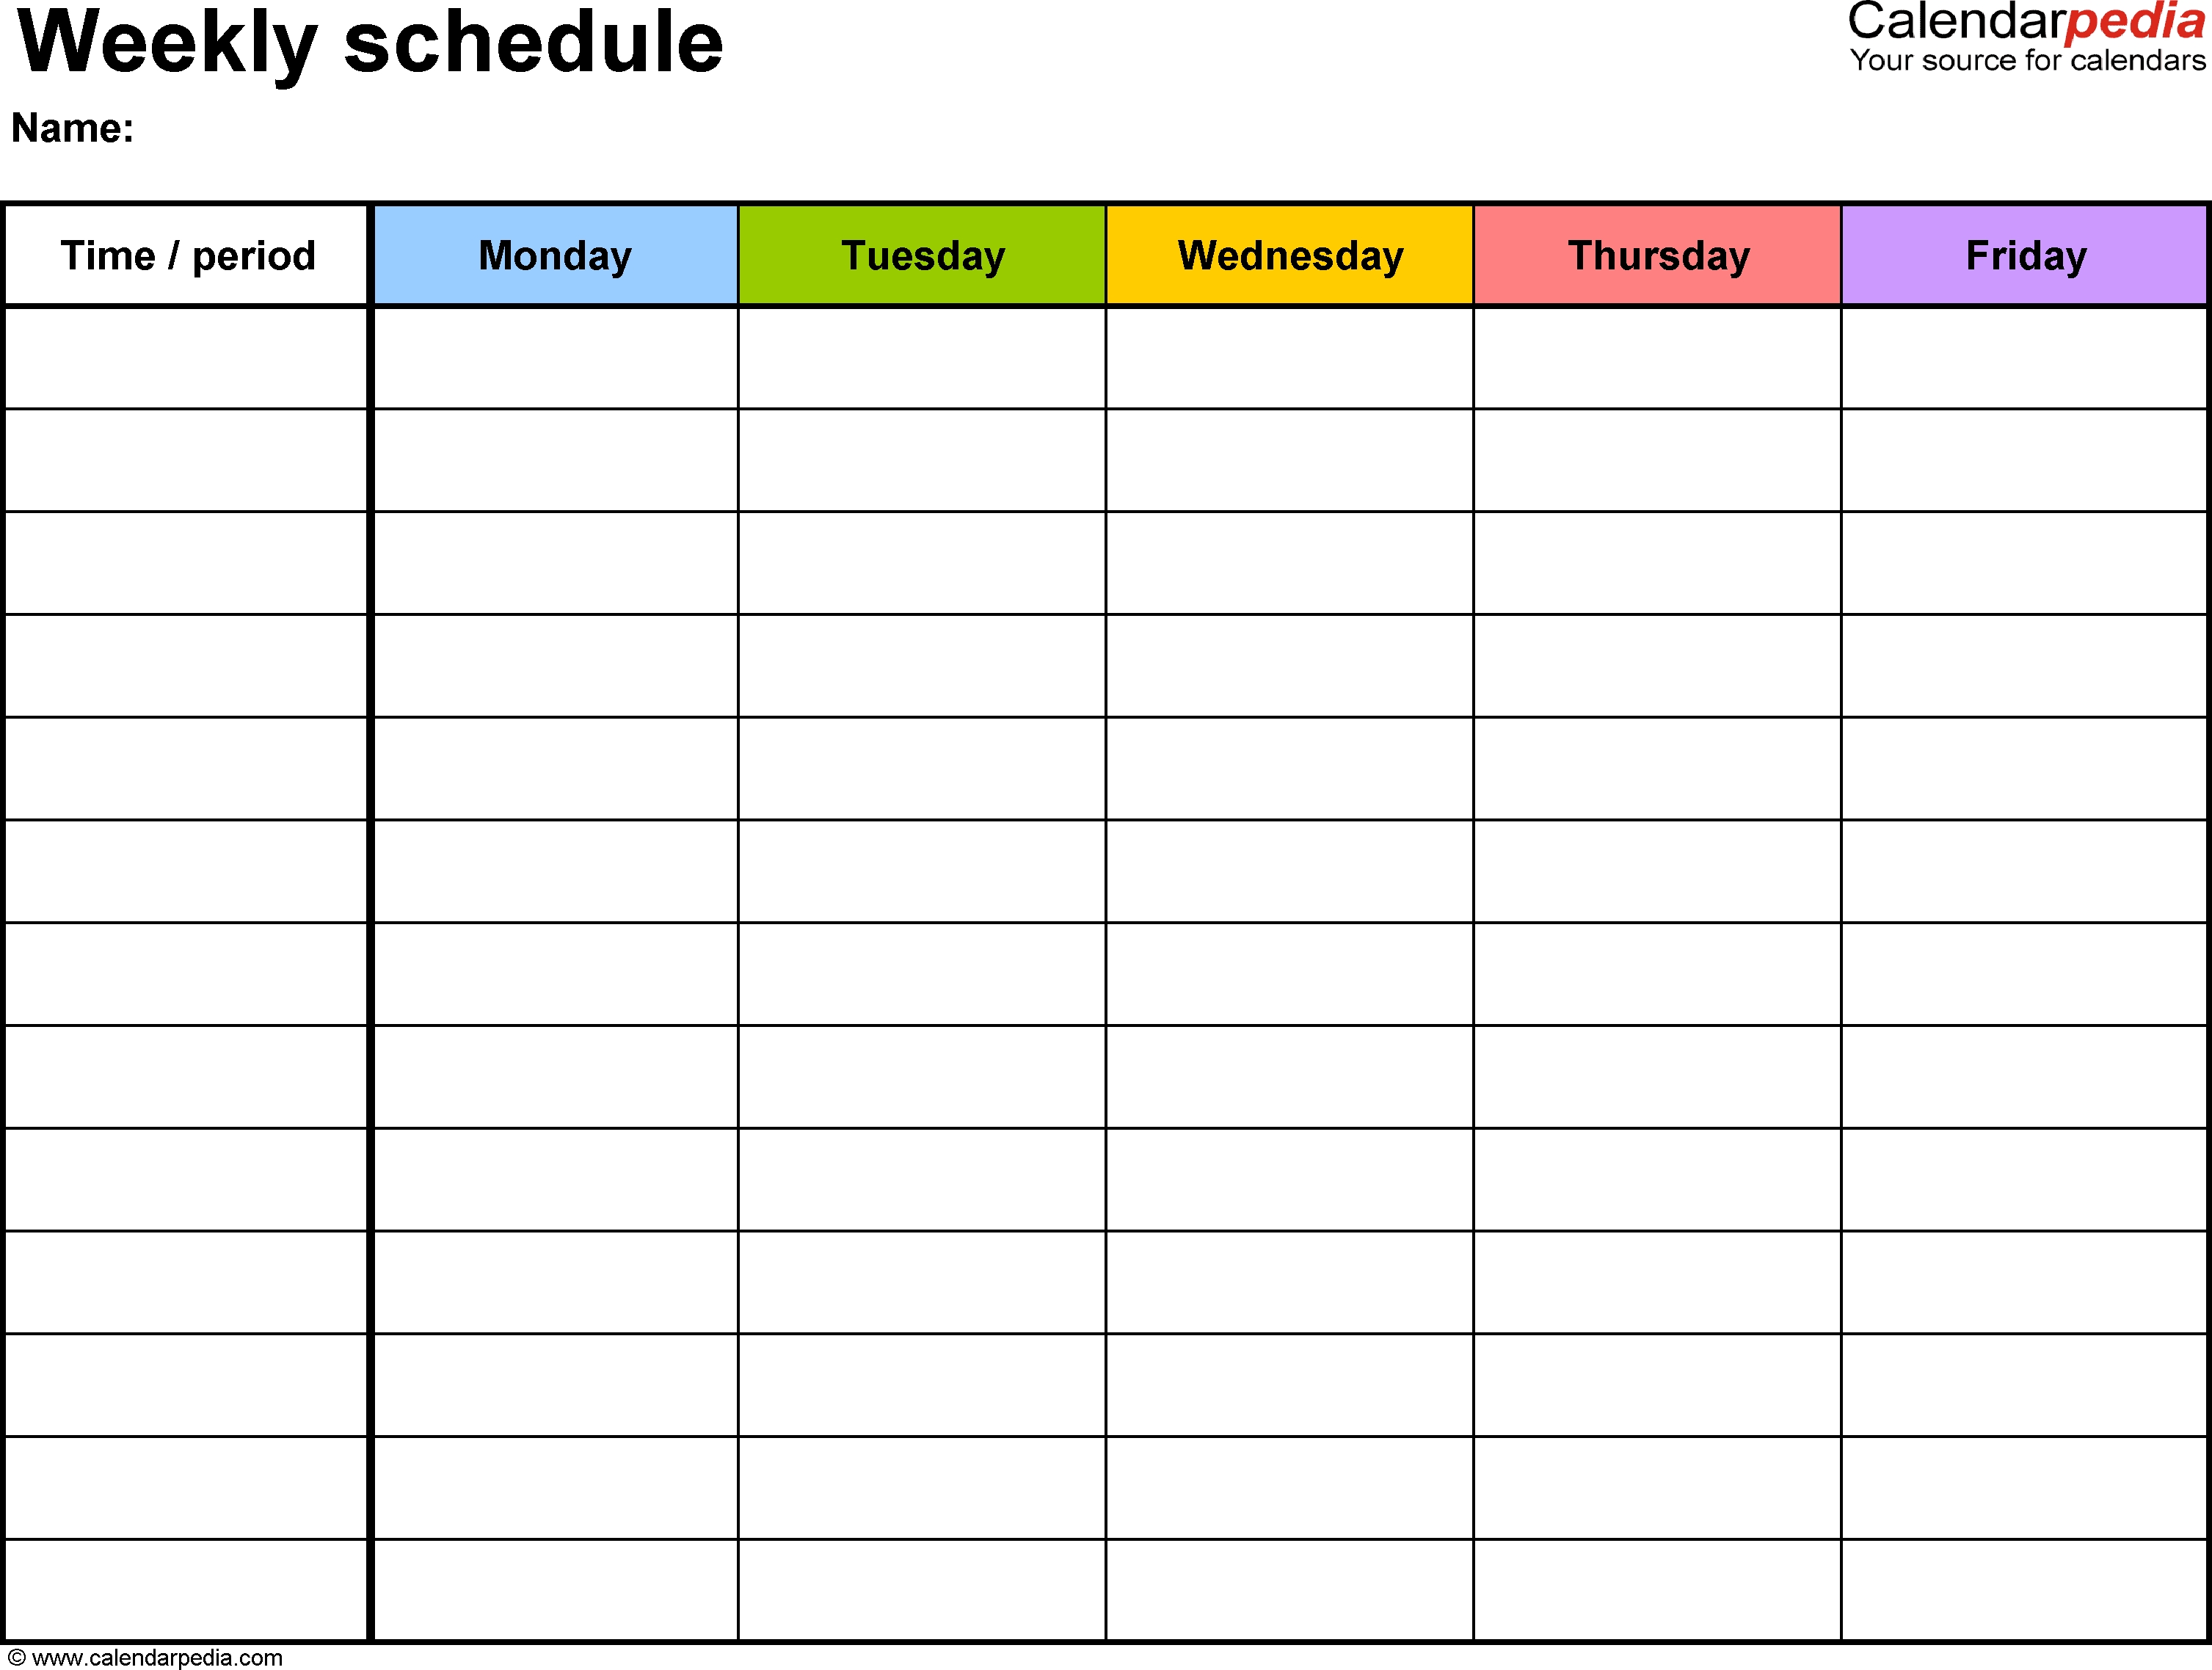 Free Weekly Schedule Templates For Word - 18 Templates within Empty Appointment Calendar One Month